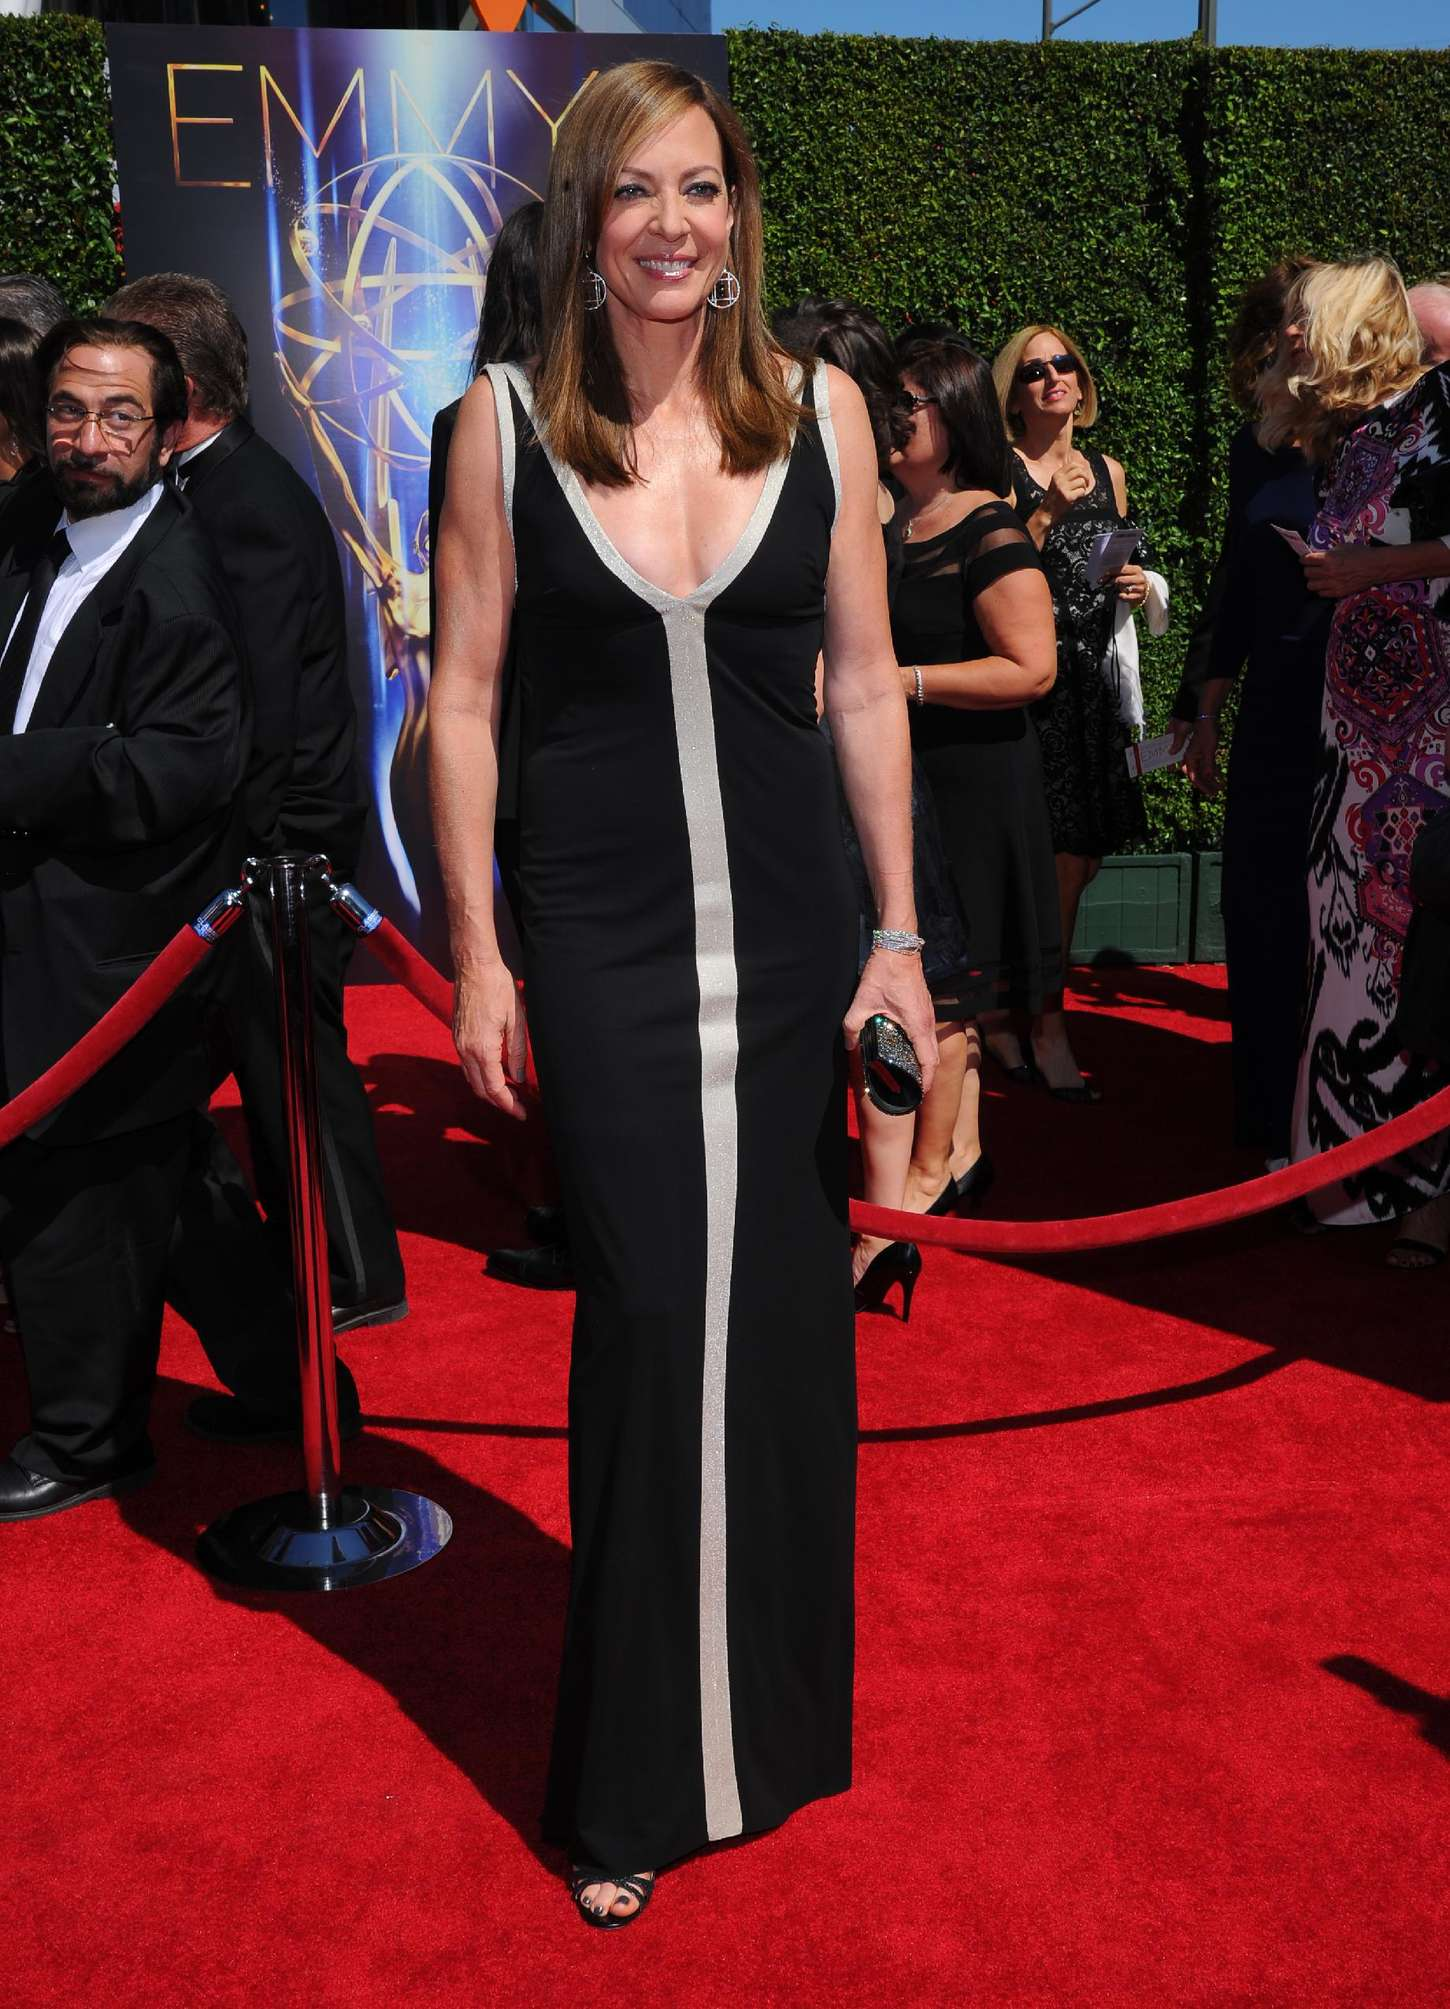 Allison Janney Creative Arts Emmy Awards